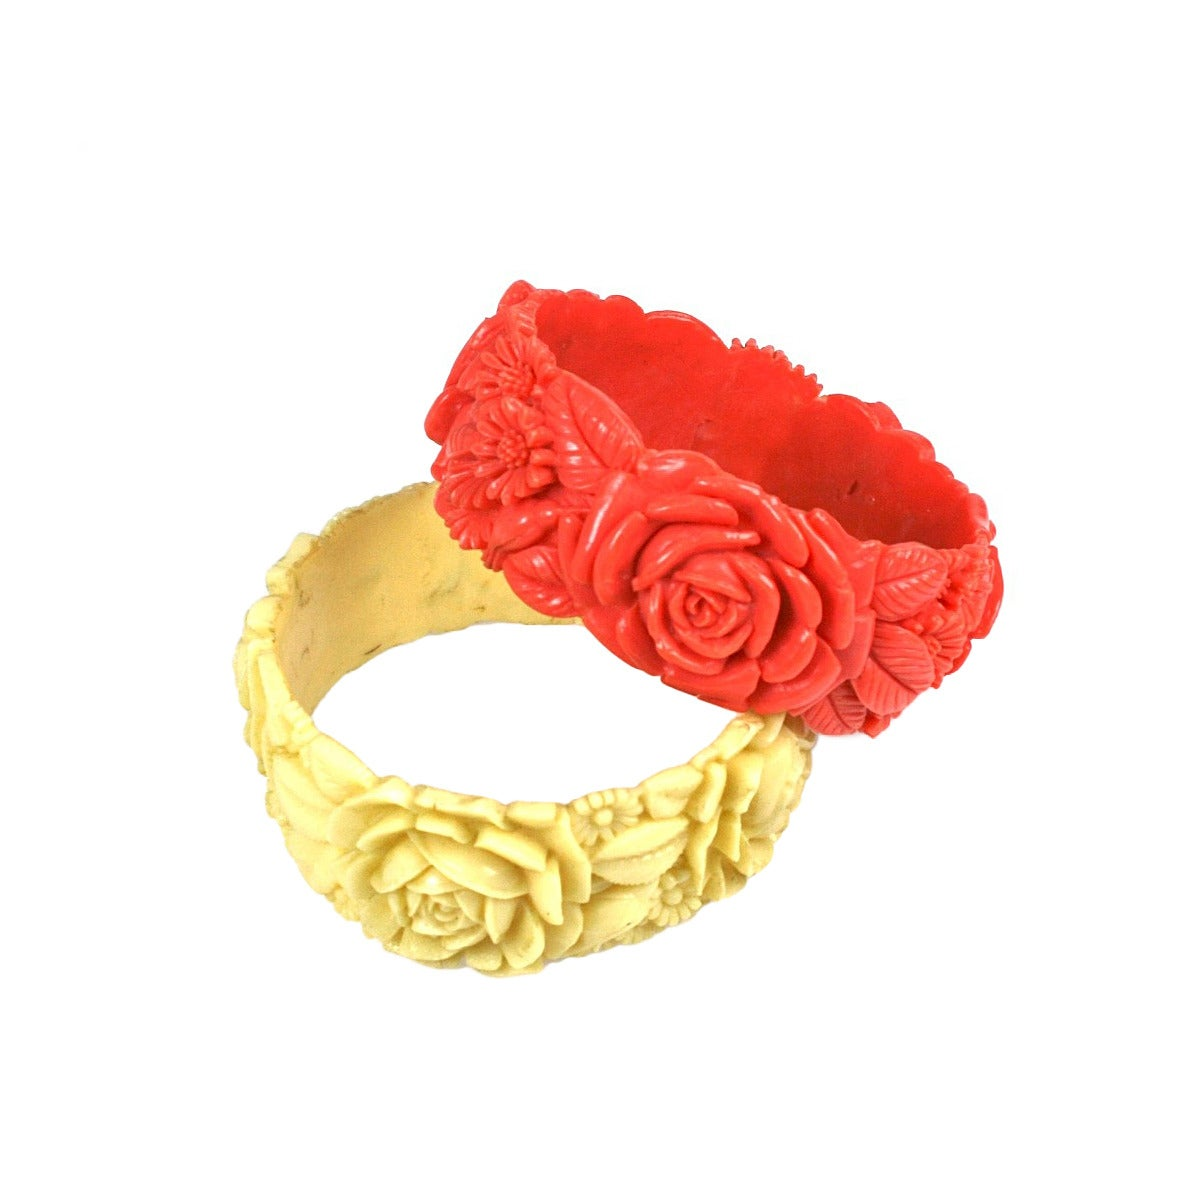 Pair of Deco Celluloid Rose Bangles For Sale